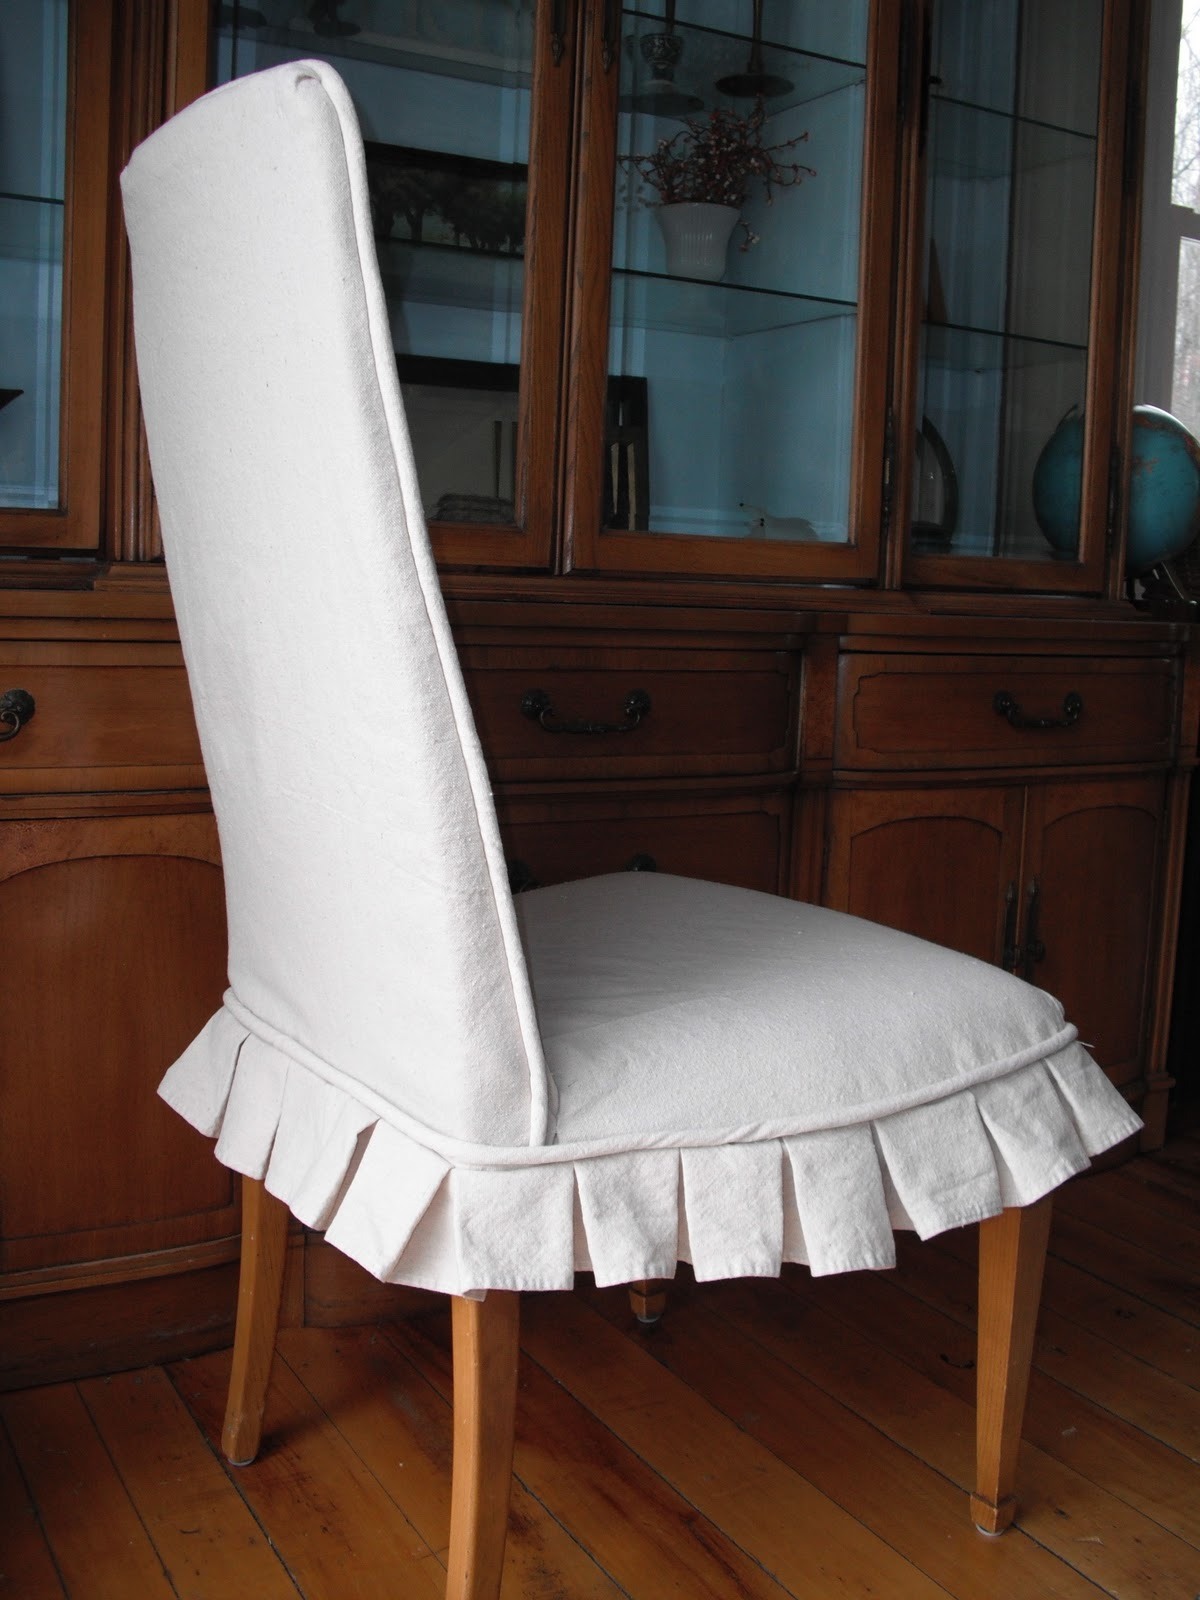 Chair Covers For Dining Chairs Banana Leaf Couch Potato Slipcovers Cover With Box